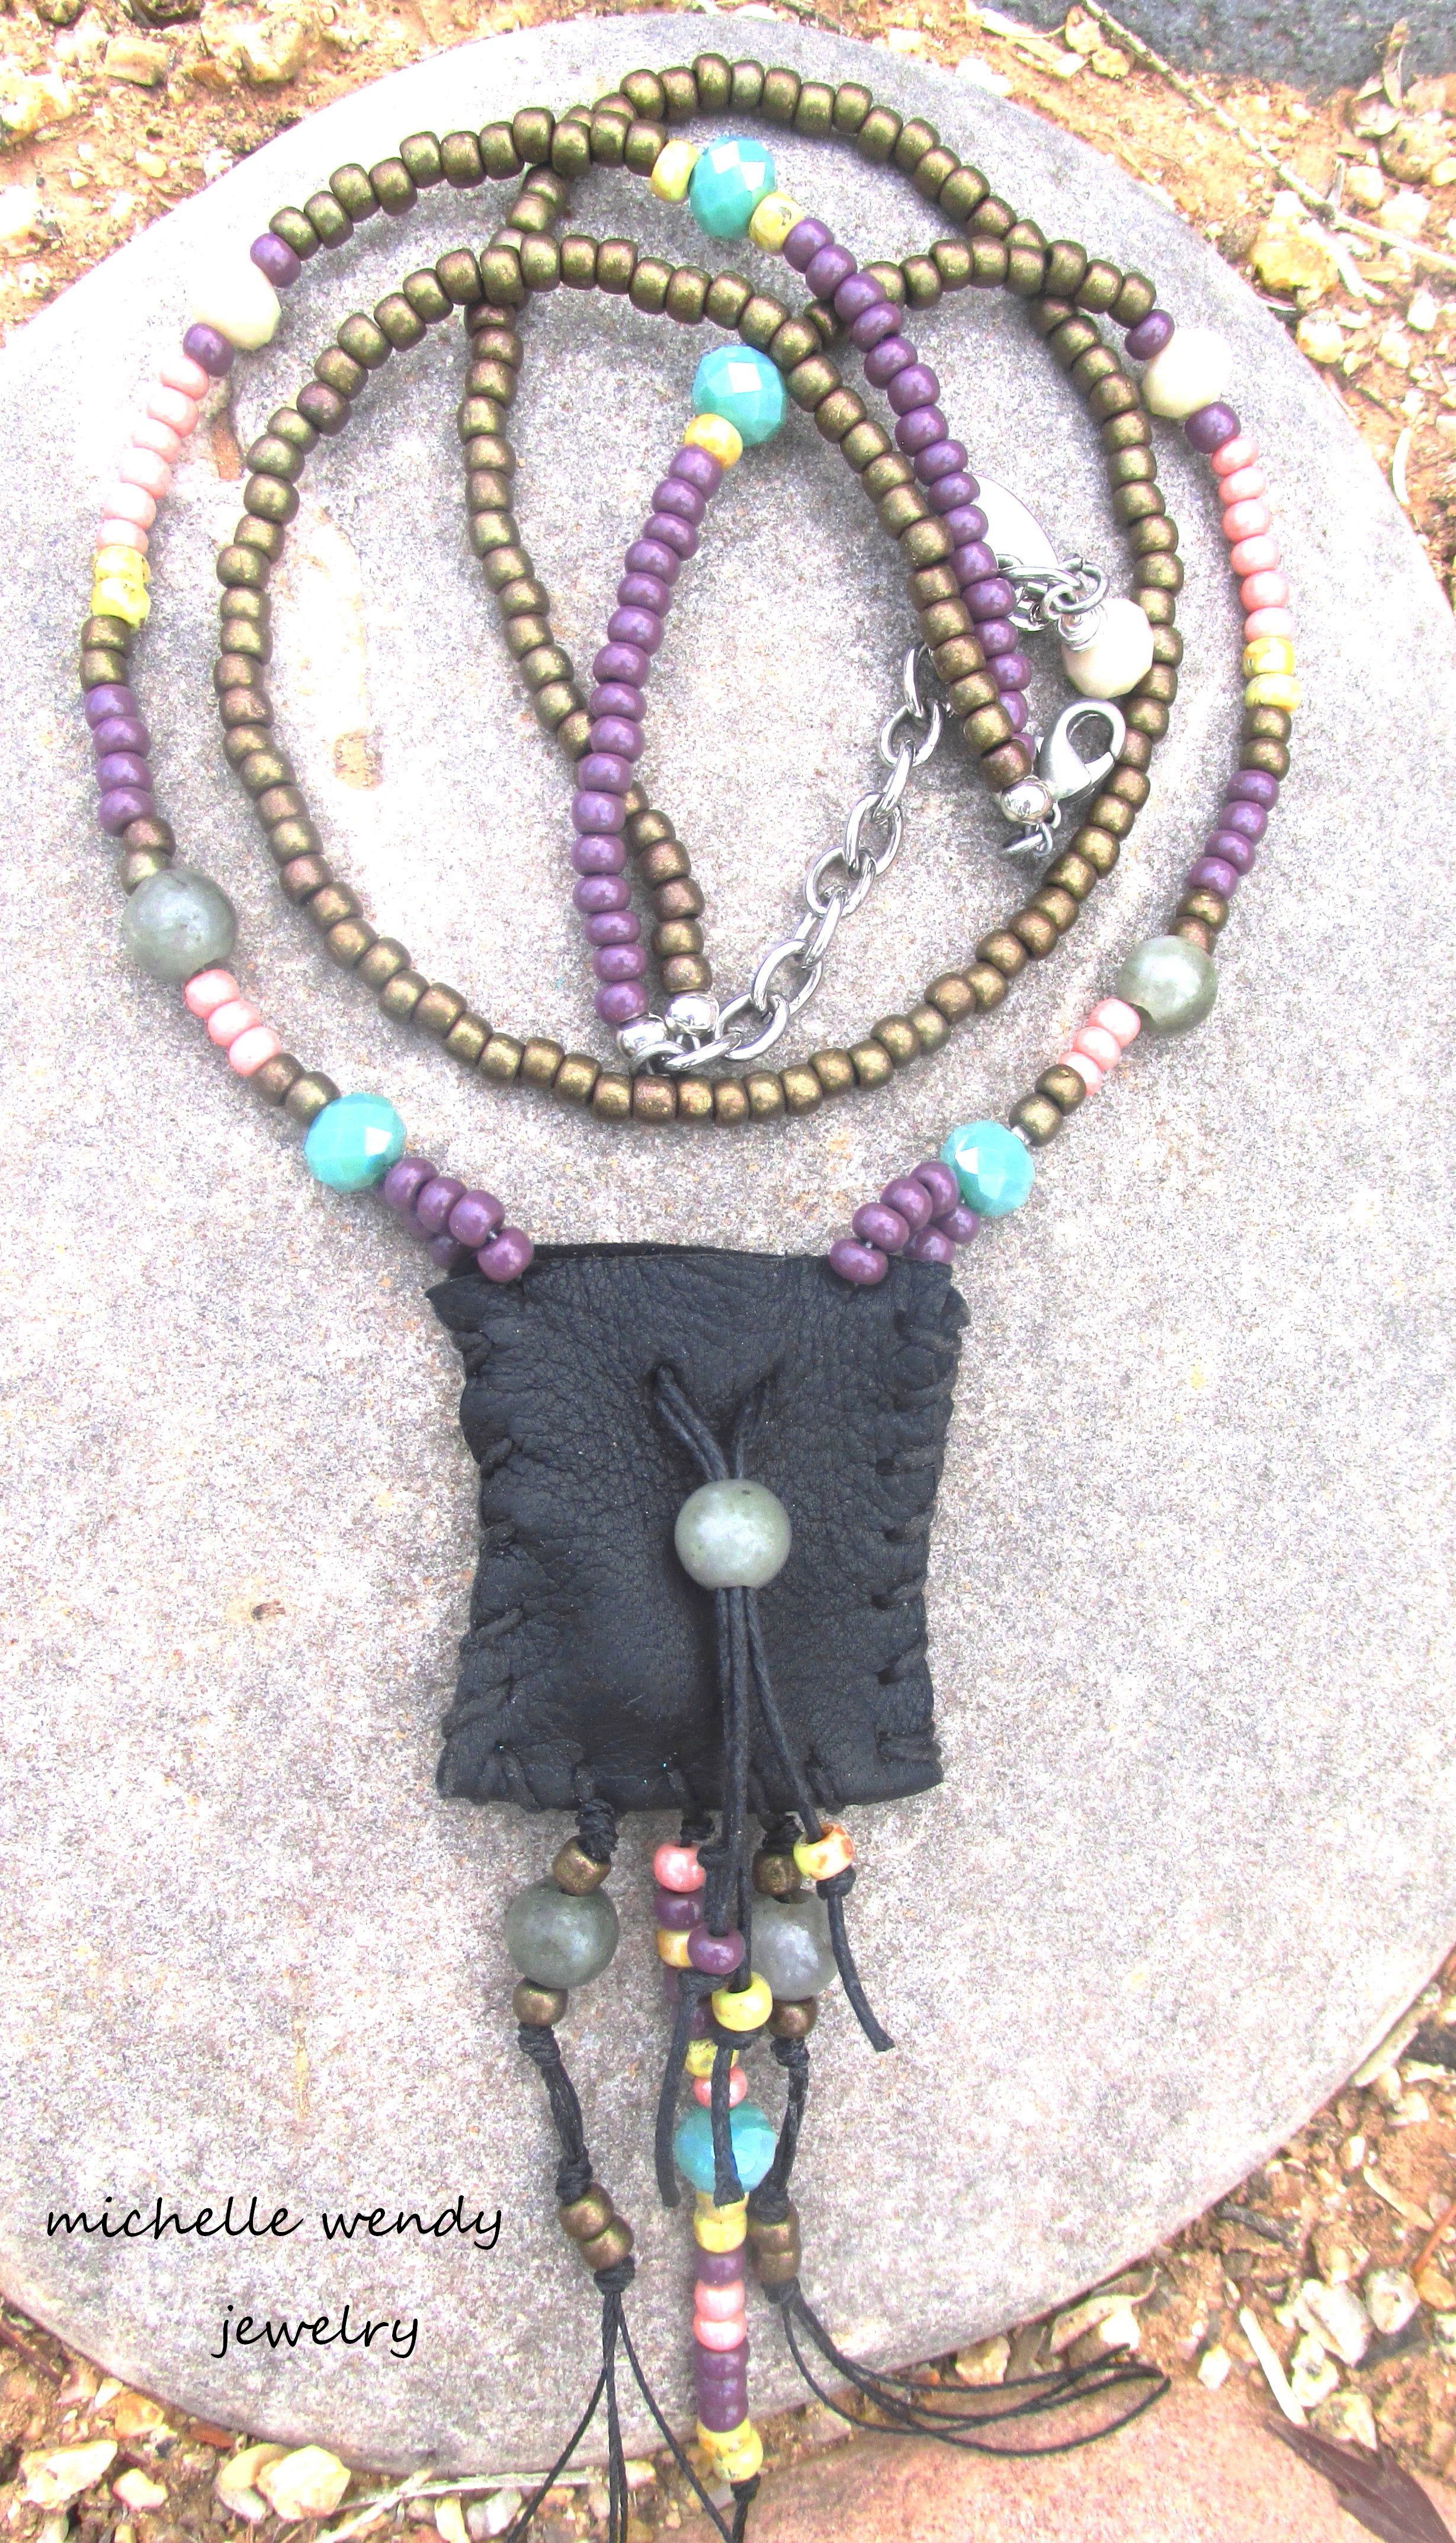 HANDMADE DEERSKIN BOHO CHIC MEDICINE POUCH FOR YOU TO KEEP CLOSE TO YOUR HEART .. HEALING LABRADORITE STONES